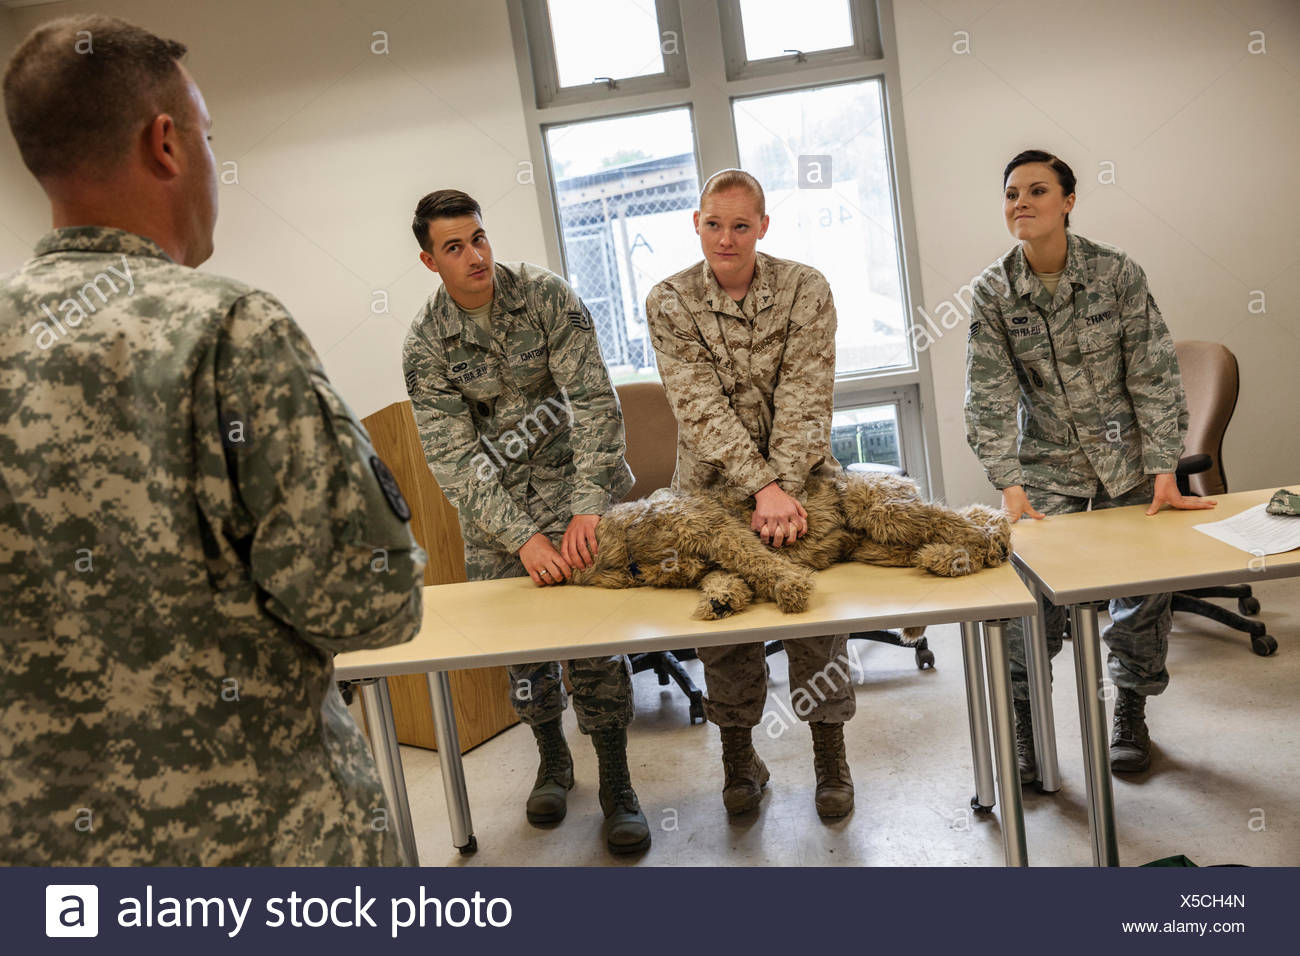 Military students learn cardio pulmonary resuscitation for military working dogs as part of a first aid class. - Stock Image